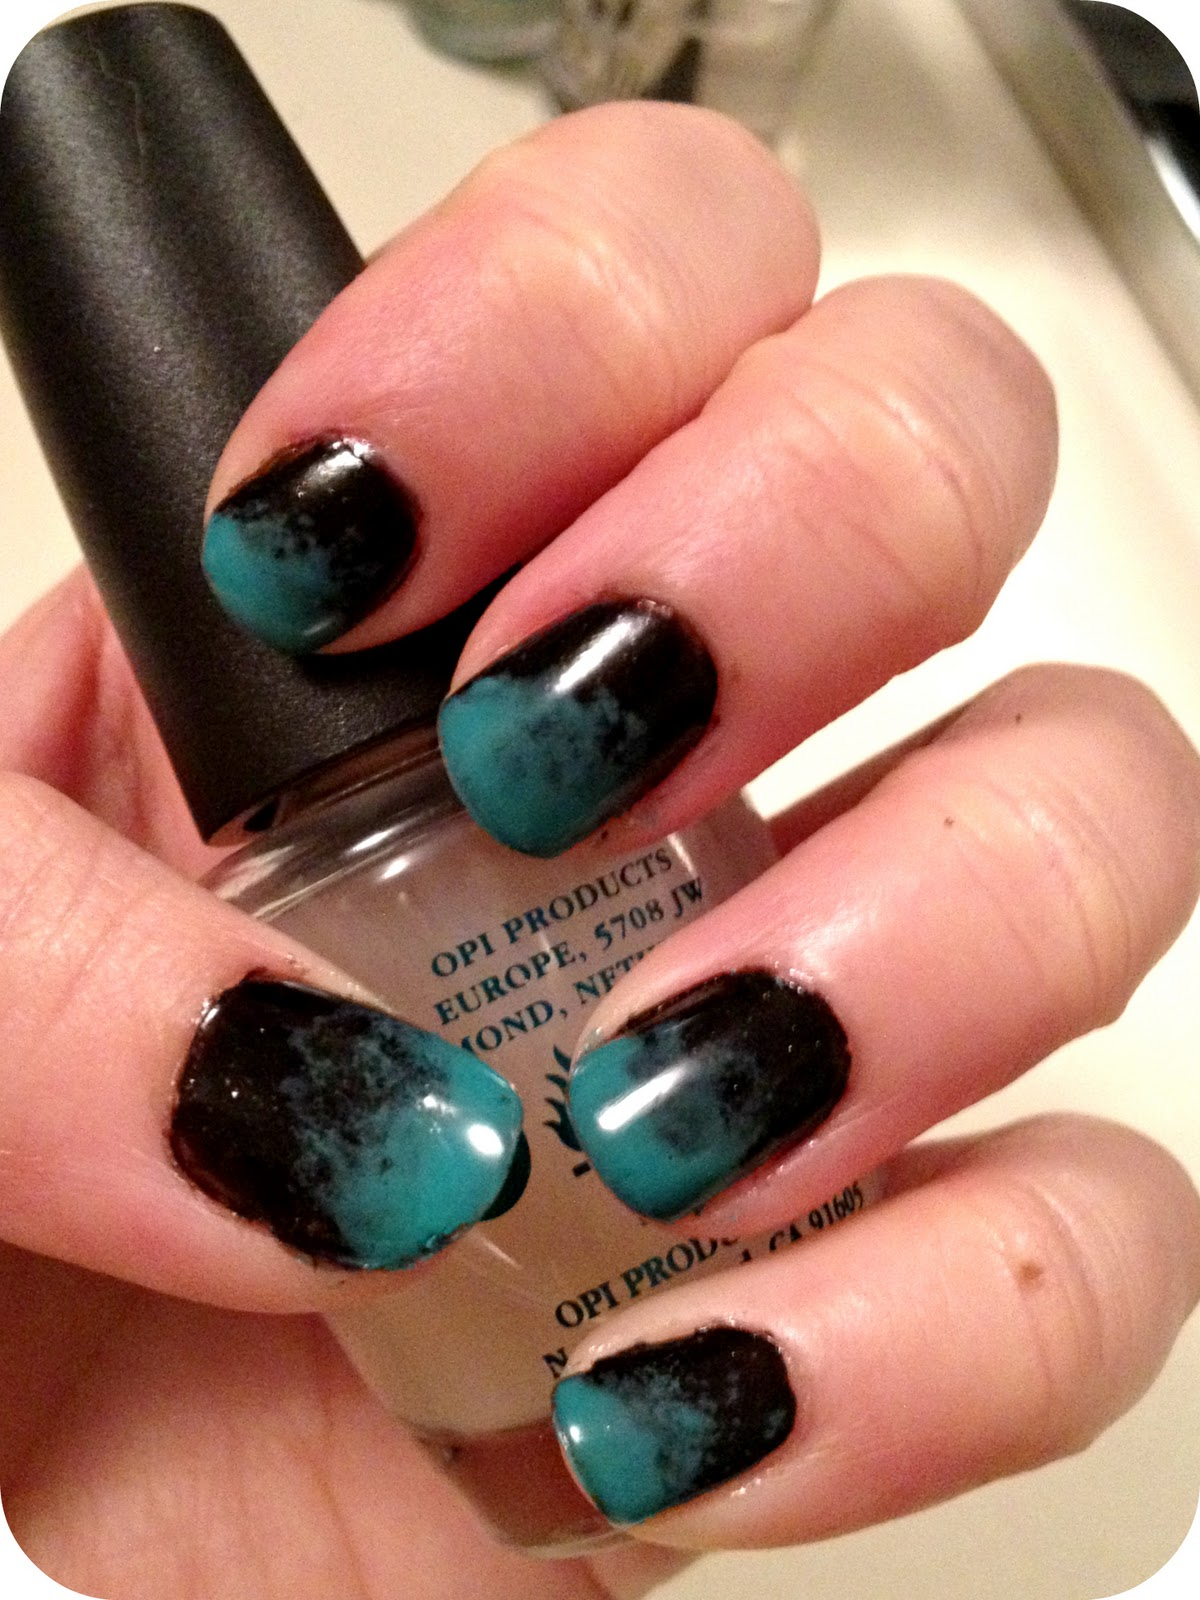 Ombre Nail Trend: Teal & Black Ombre Nails